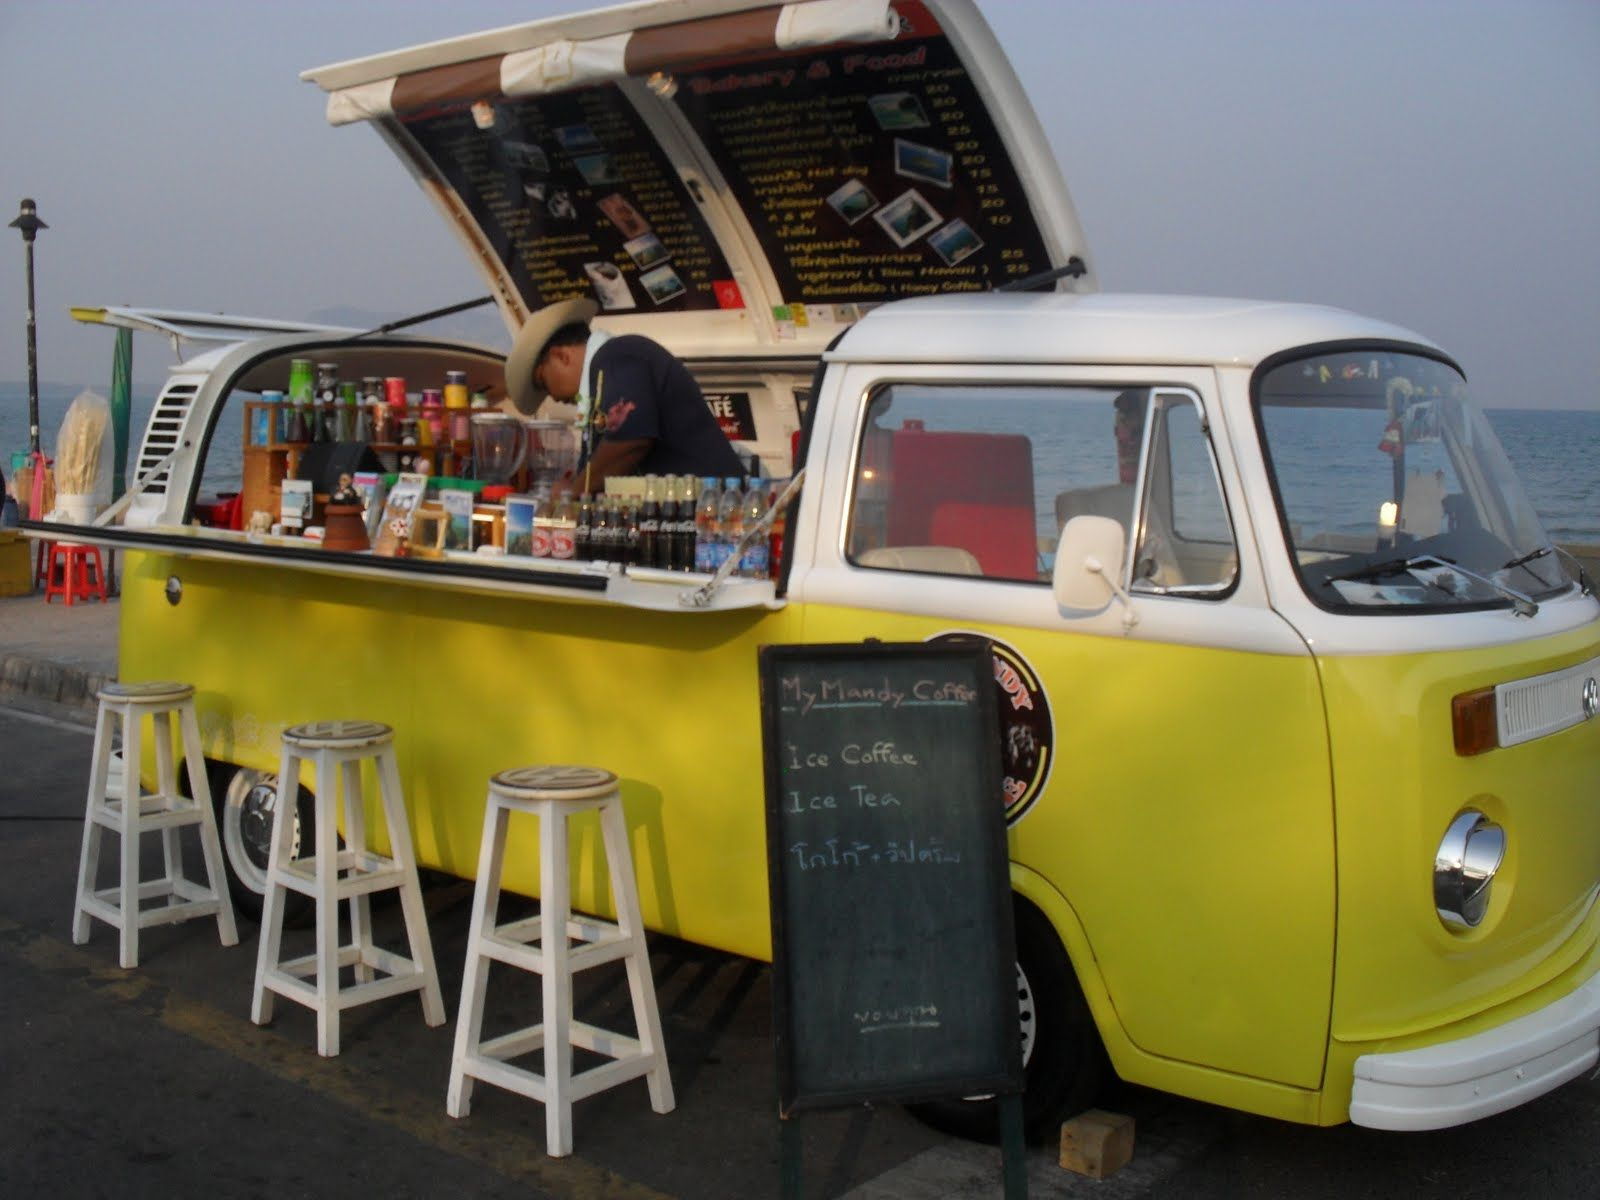 25 of the best food truck designs design galleries paste - A Bit Of Good News From Vw Is The Van Is Returning In While We Wait Here S A Collection Of Unusual Photos Of The Classic Bus From Across The Years